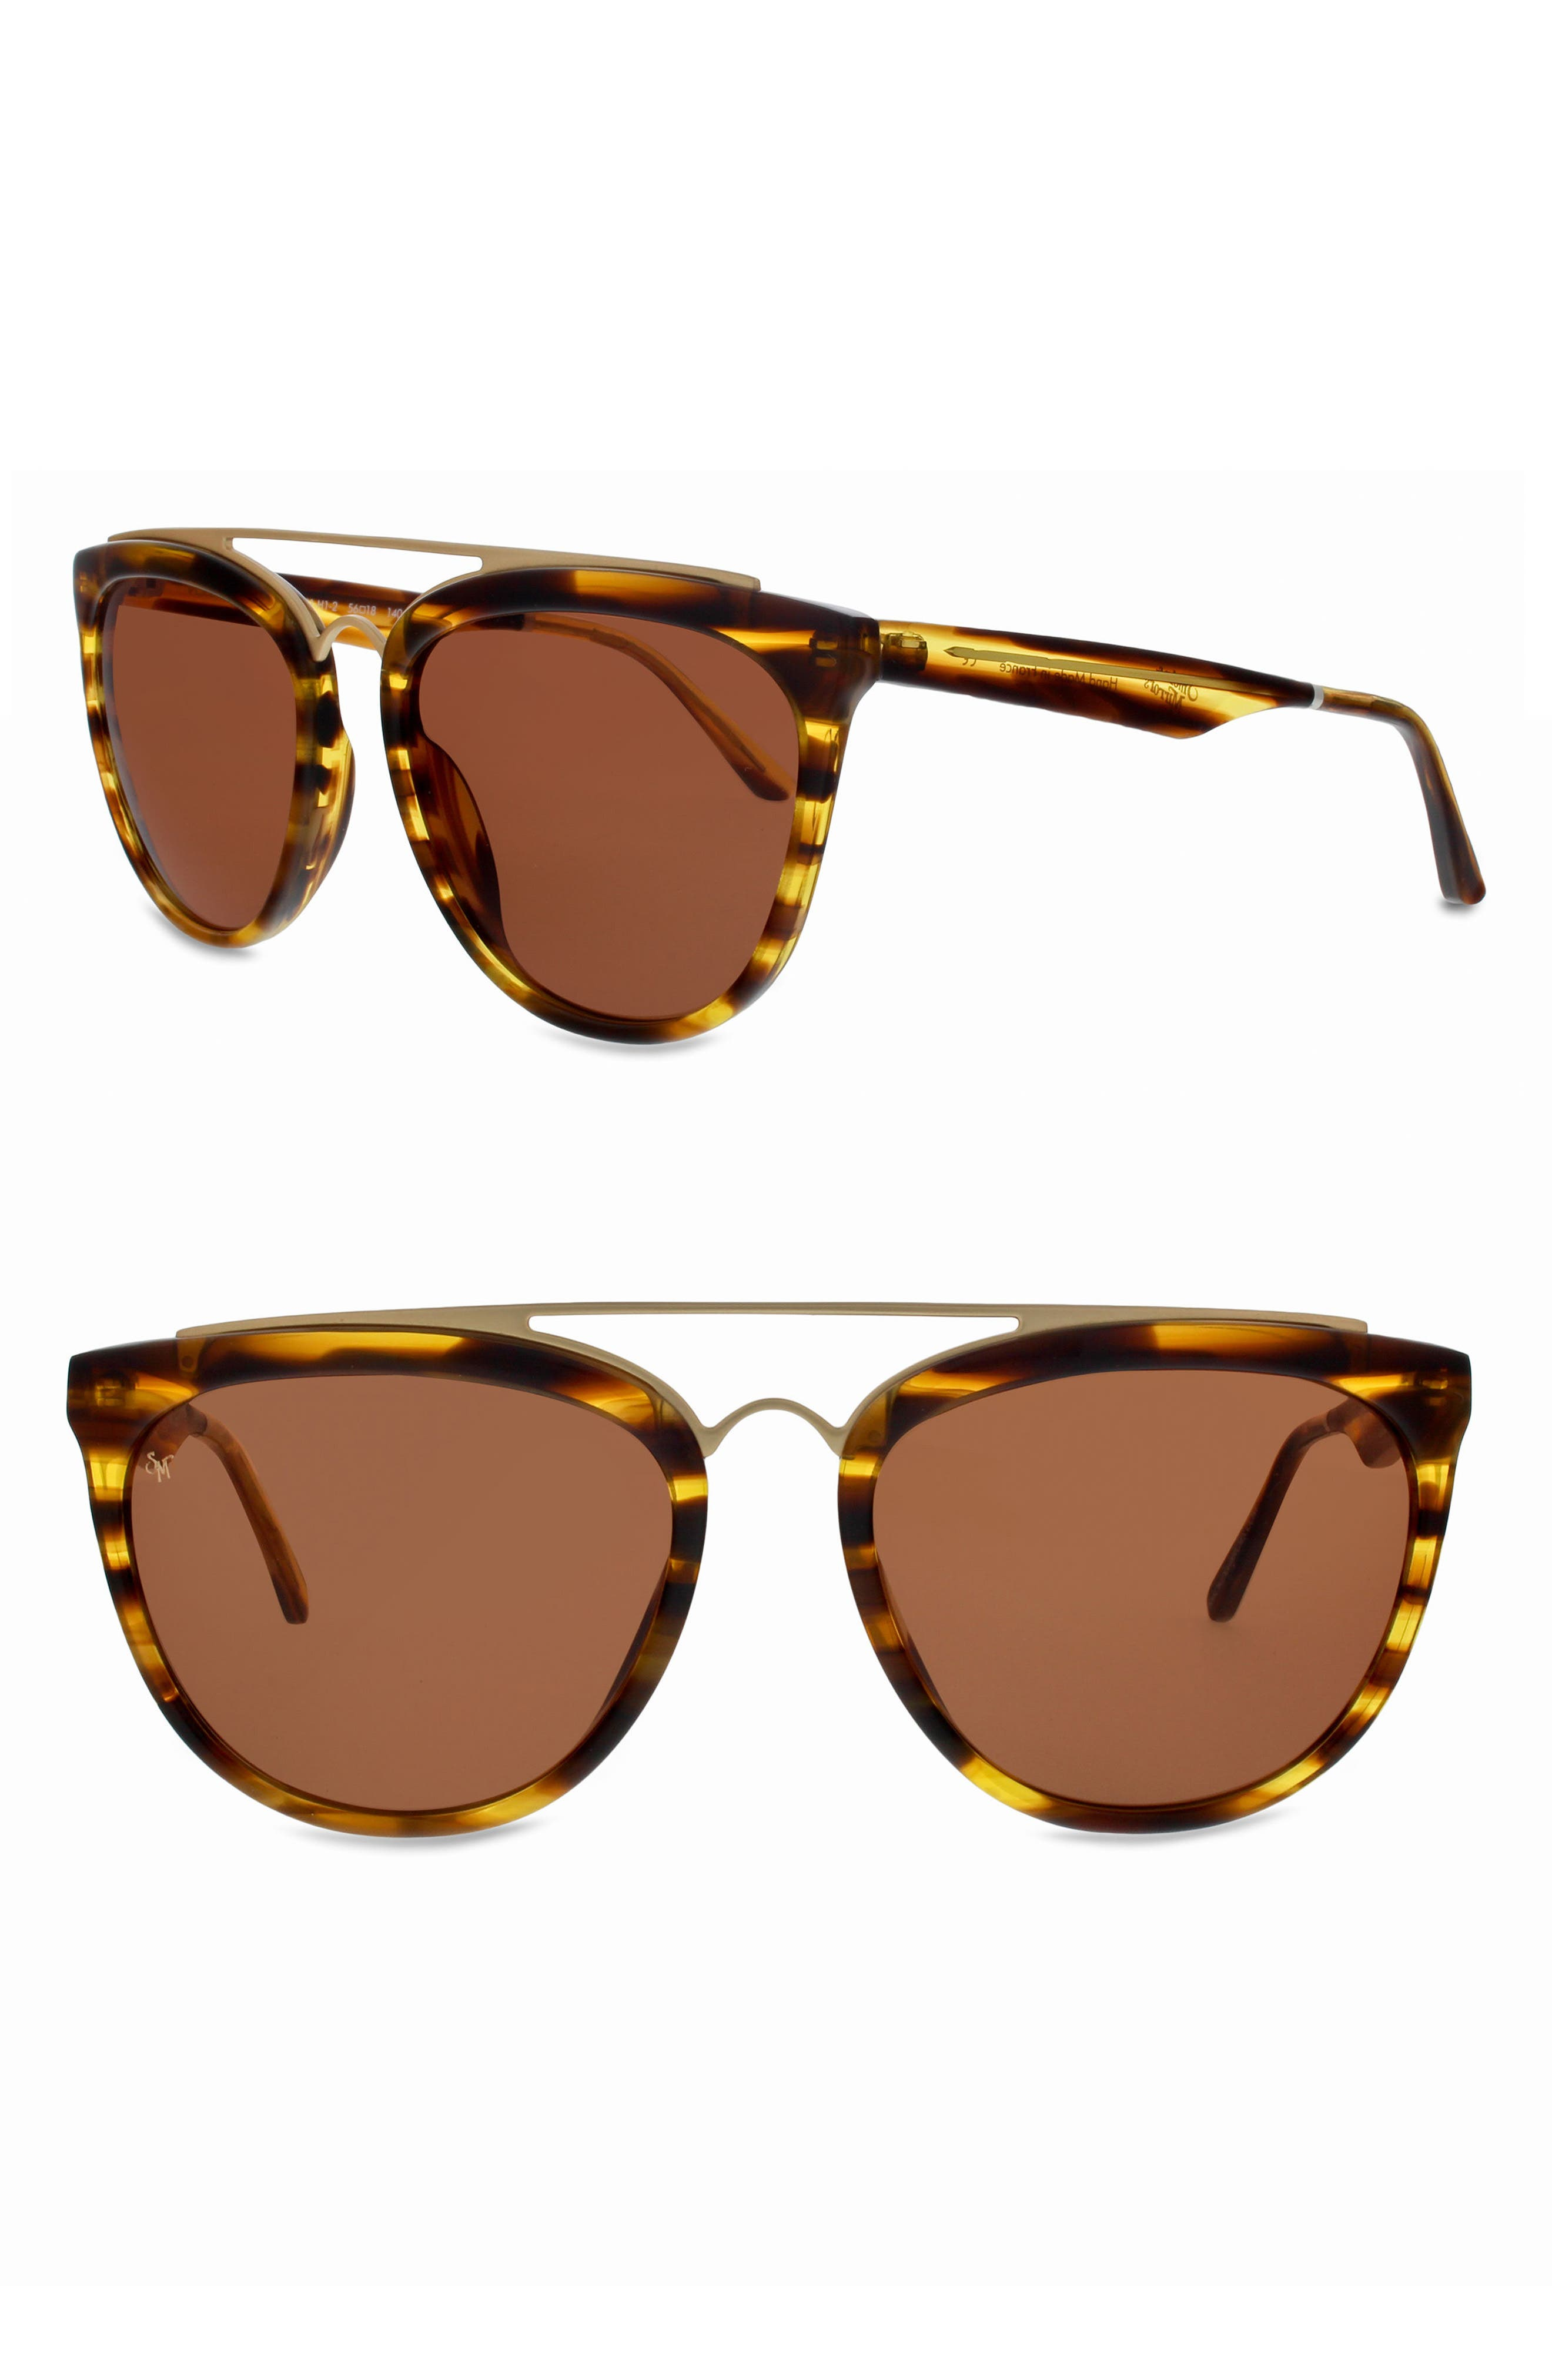 Volunteers 56mm Sunglasses,                             Main thumbnail 1, color,                             Brown Havana/ Matte Gold